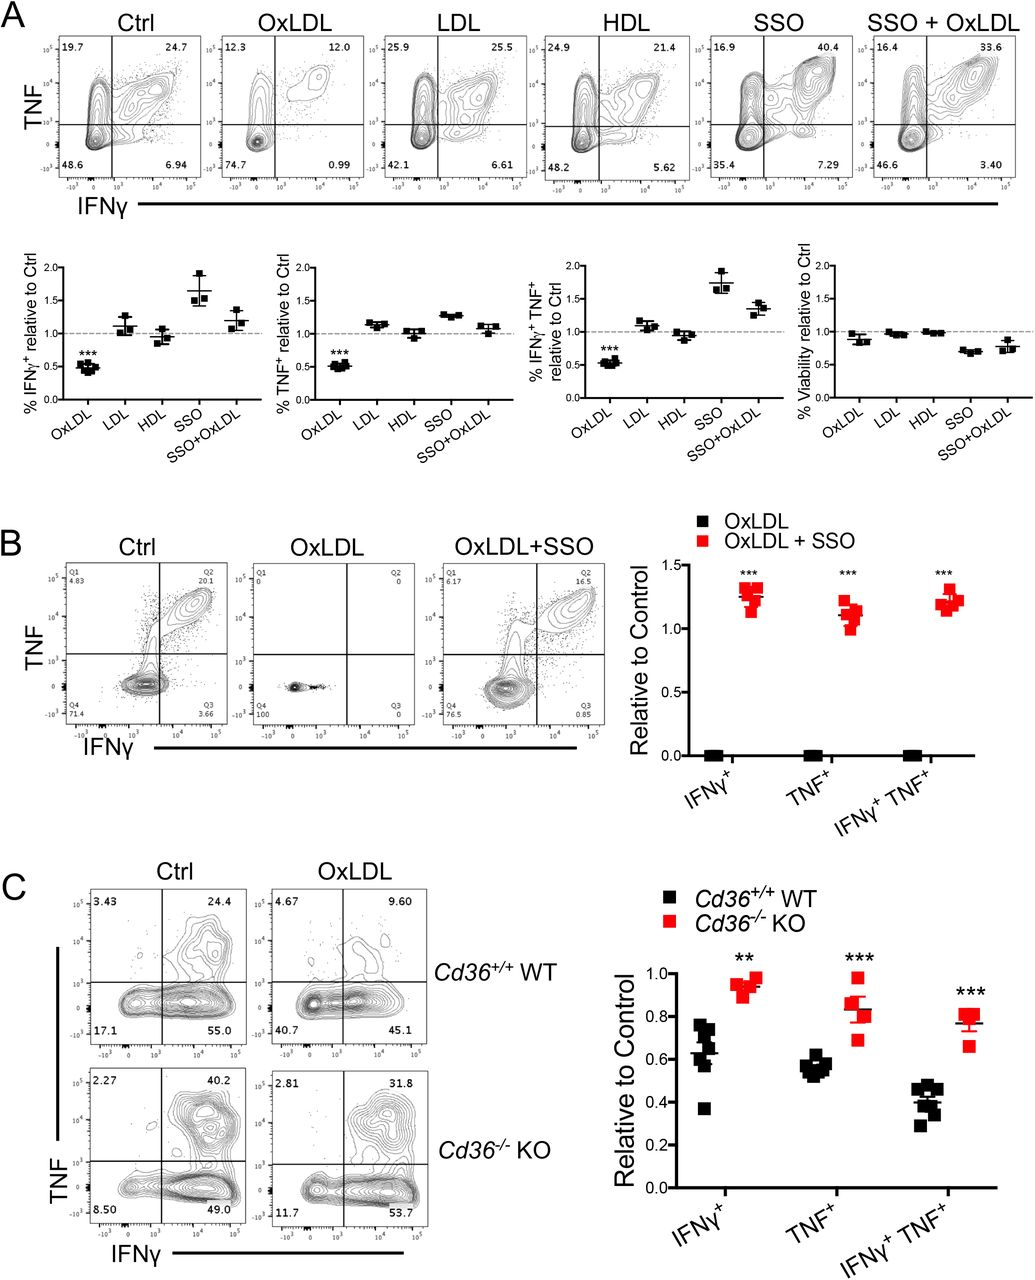 OxLDL inhibits CD8 + T cell function in a CD36-dependent manner (A) P14 CD8 + T cells were activated in vitro with gp33 peptide plus IL-2 for 24 hrs and then treated with either vehicle control (Ctrl), OxLDL (50 μg/ml), LDL (50 μg/ml), HDL (50 μg/ml), SSO (100 μM), or the combination of OxLDL (50 μg/ml) and SSO (100 μM), for another 48 hrs. TNF, IFNγ and cell viability were then measured upon re-stimulation with gp33 for 6 hours and analyzed by flow cytometry. (B) Human PBMCs were treated with either vehicle control (Ctrl), OxLDL (50 μg/ml), or the combination of OxLDL (50 μg/ml) and SSO (100 μM). TNF, IFNγ and cell viability was measured by flow cytometry 16 hrs after stimulation with Staphylococcal enterotoxin B (SEB). (C) Cd36 +/+ or Cd36 -/- CD8 + TILs isolated from B16 tumors 21 days post implantation were purified by FACS and treated with either vehicle control (Ctrl) or oxLDL (50 μg/ml) for 24 hrs. TNF and IFNγ was measured by flow cytometry 4 hrs after stimulation with PMA/ionomycin. Data shown are mean± SEM and statistical tests were performed by two-tailed unpaired Student's t-test (A, C), and two-tailed paired Student's t-test (B), **p